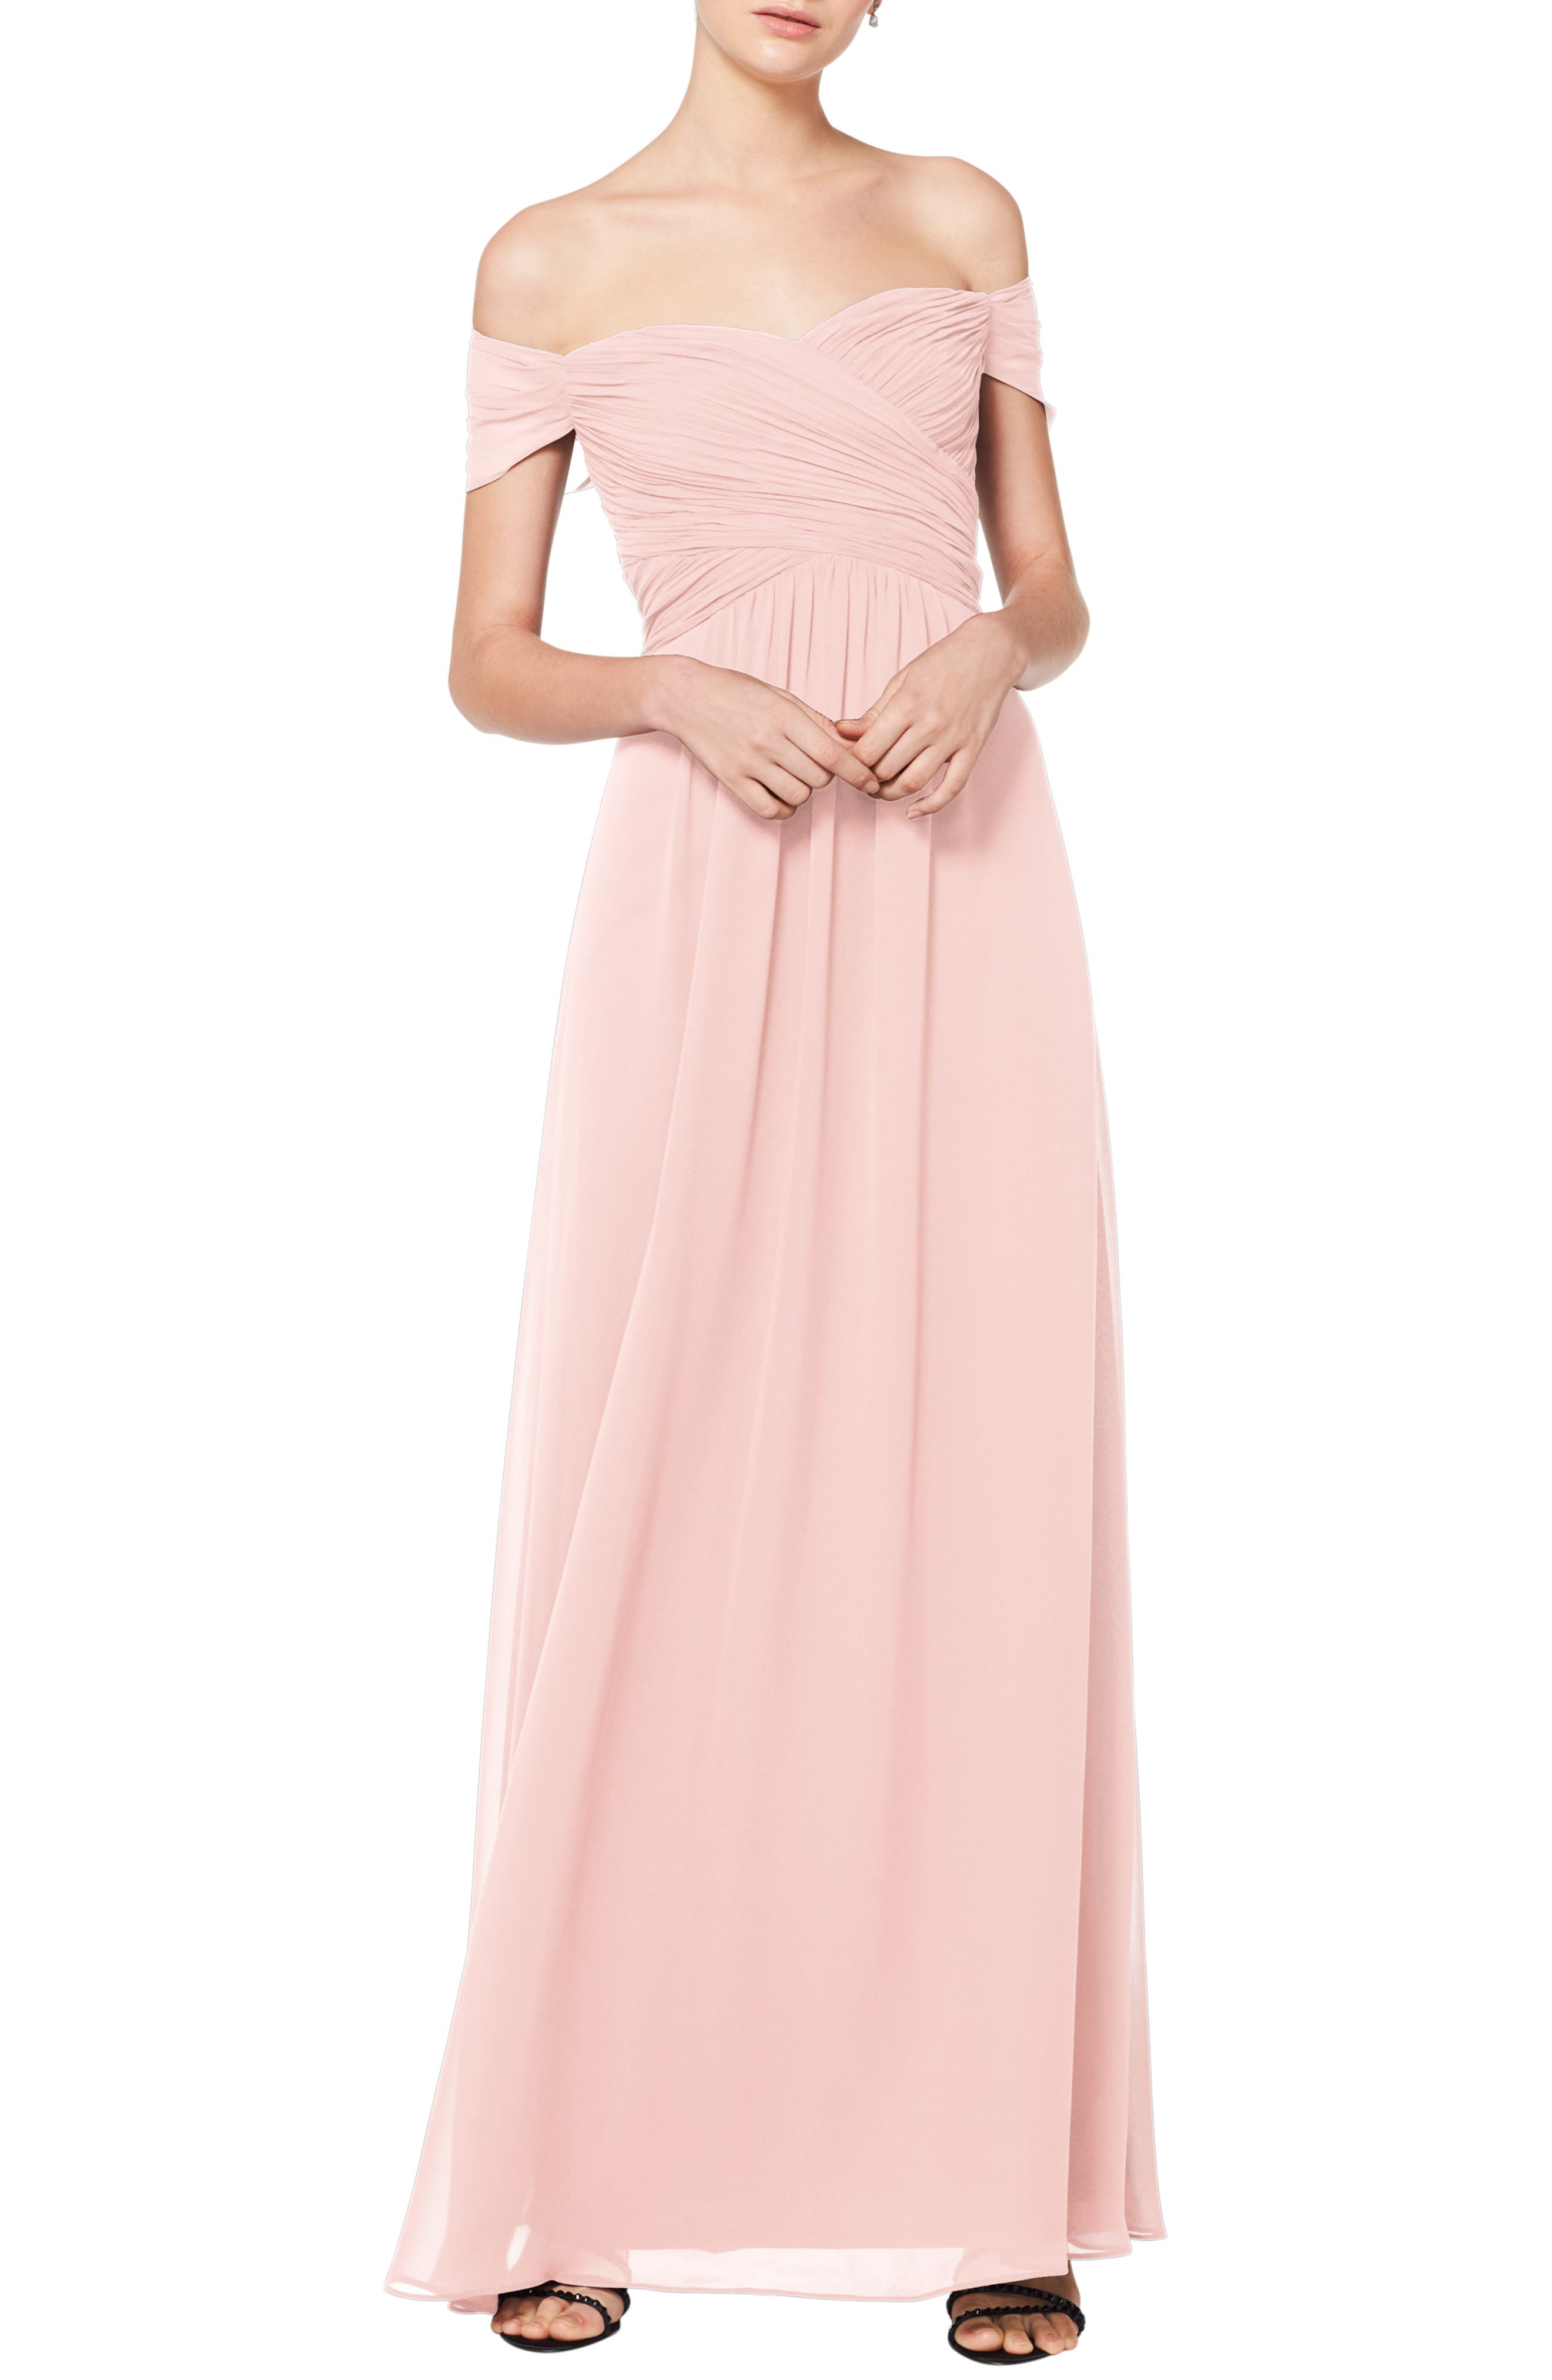 Simply romantic, with slender pleats and flowing chiffon, this shoulder-baring gown looks effortlessly elegant-because it is. The A-line silhouette makes the dress effortlessly flattering and perfect for bridesmaids or wearing to a formal event. Style Name:#levkoff Off The Shoulder Chiffon A-Line Gown. Style Number: 5774986 2. Available in stores.